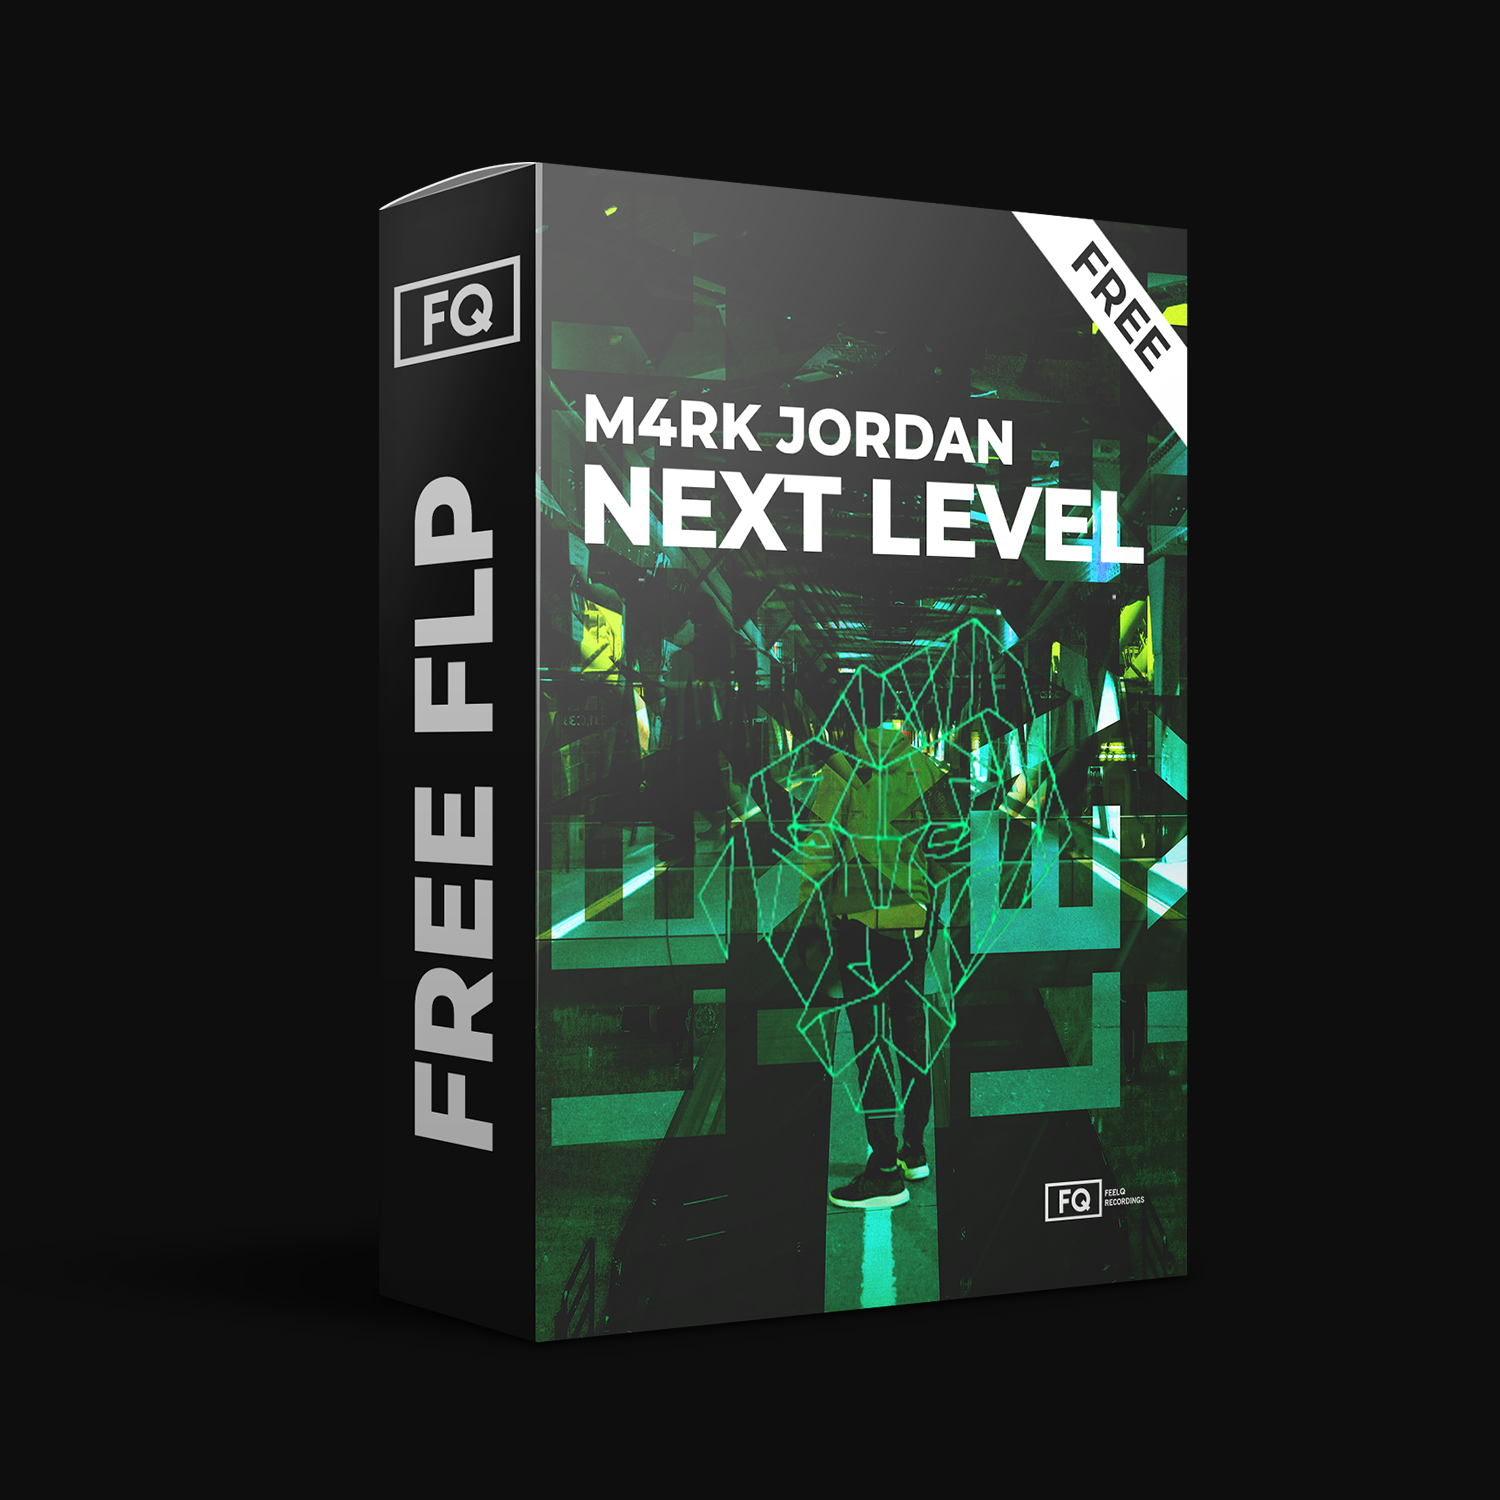 M4rk Jordan - Next Level [FREE FLP DOWNLOAD] Image